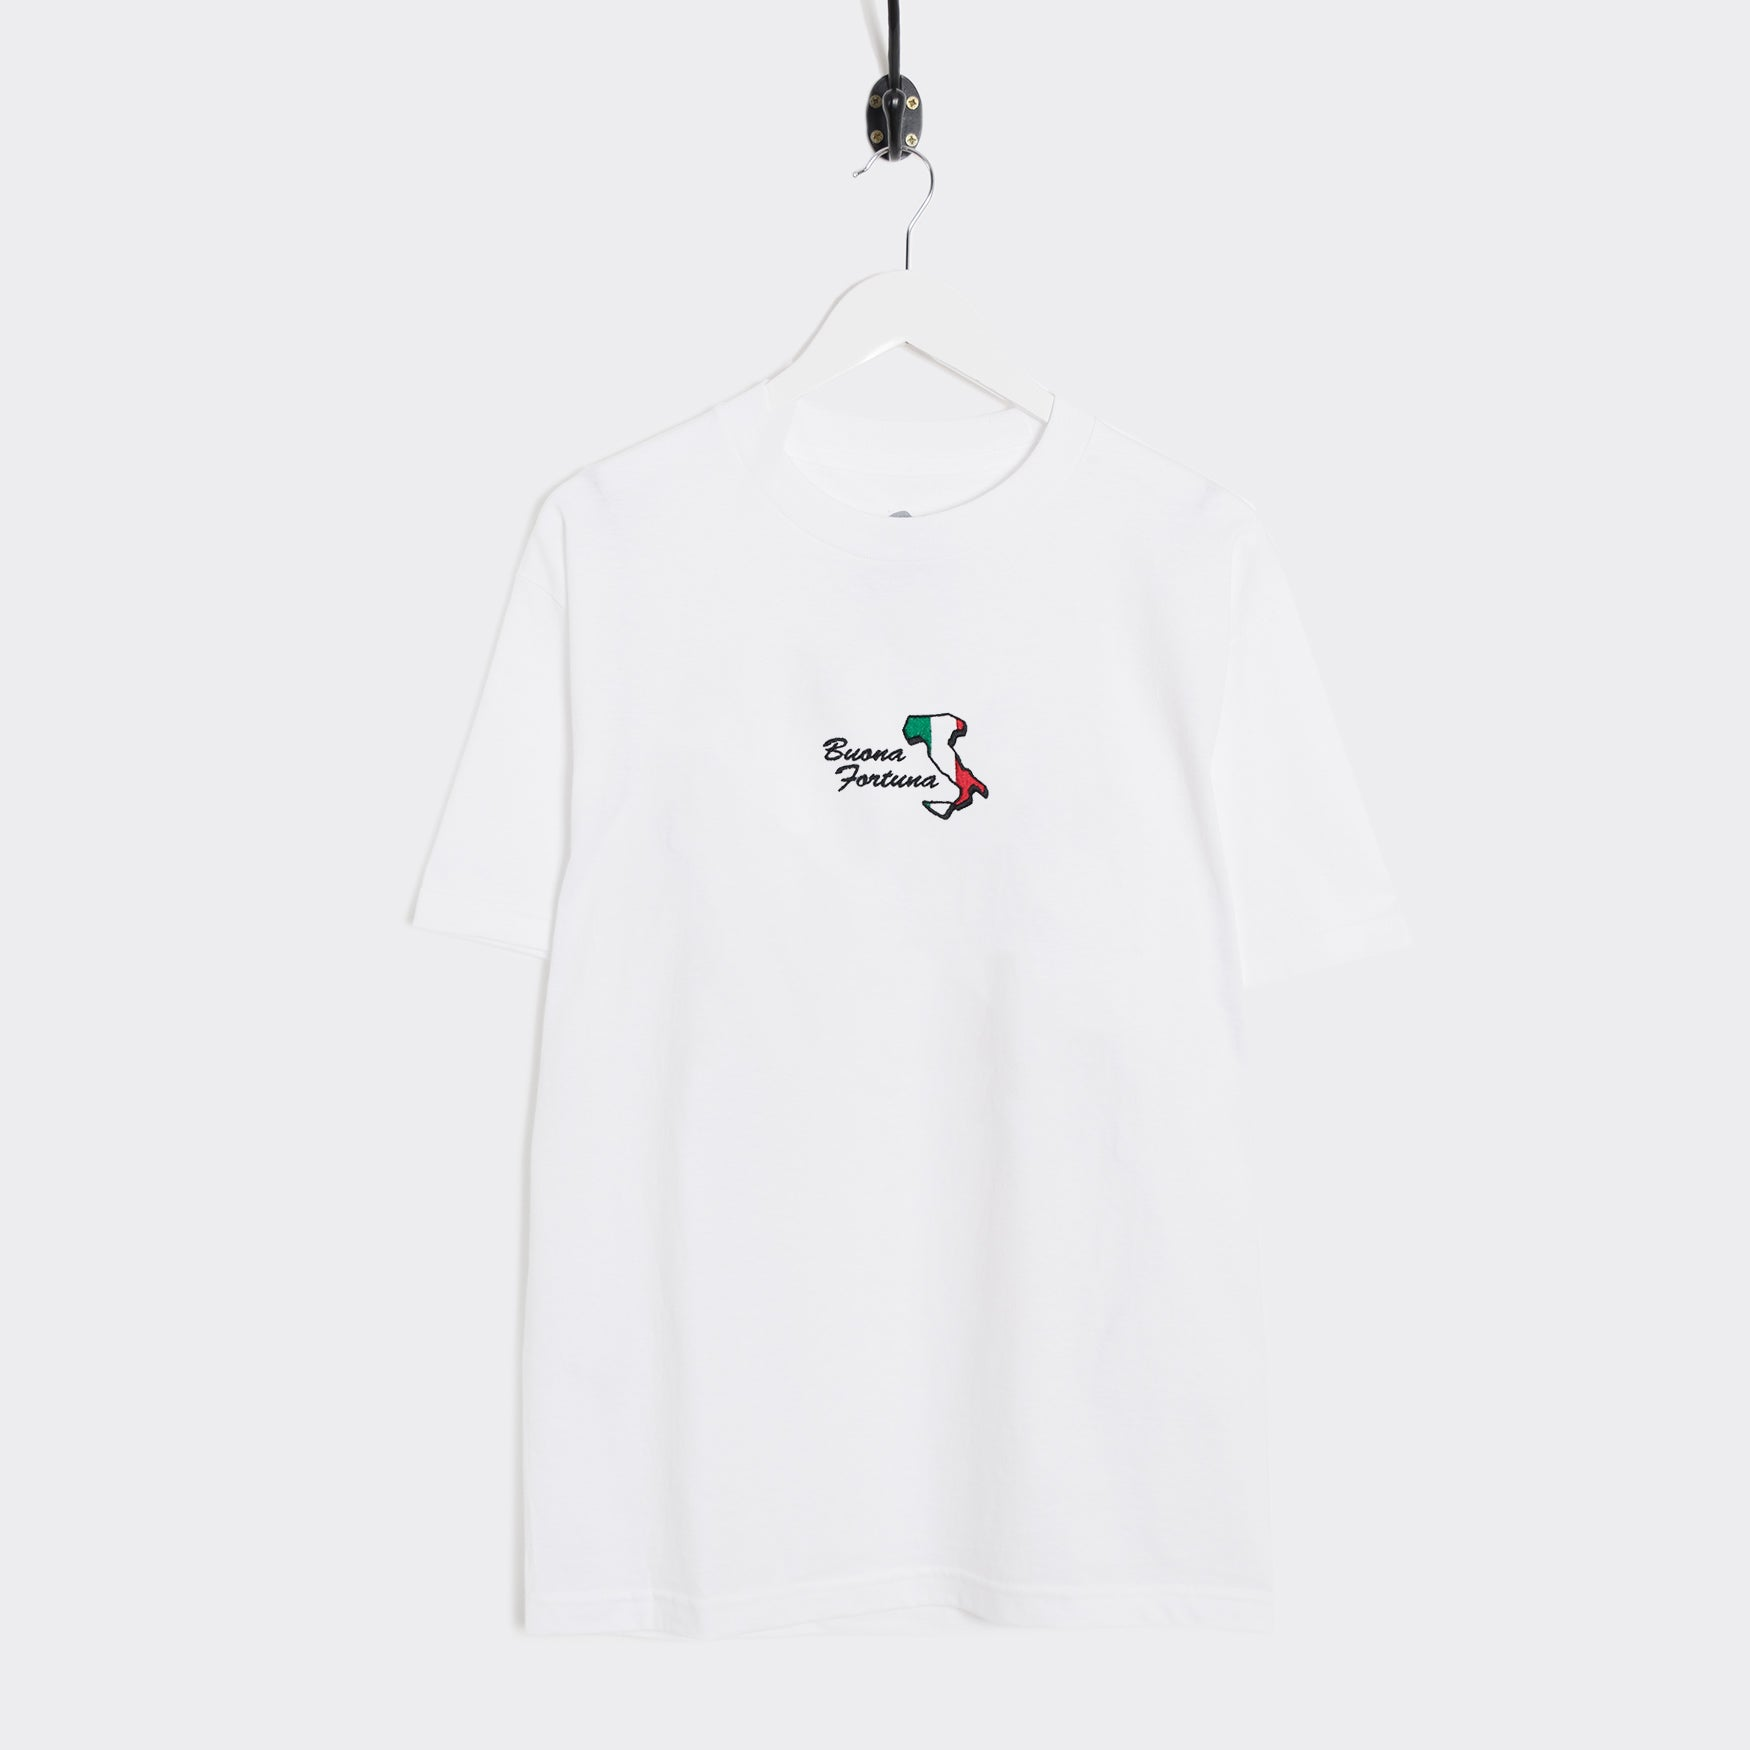 Come Sundown Buona Fortuna T-Shirt - White T-Shirt - CARTOCON